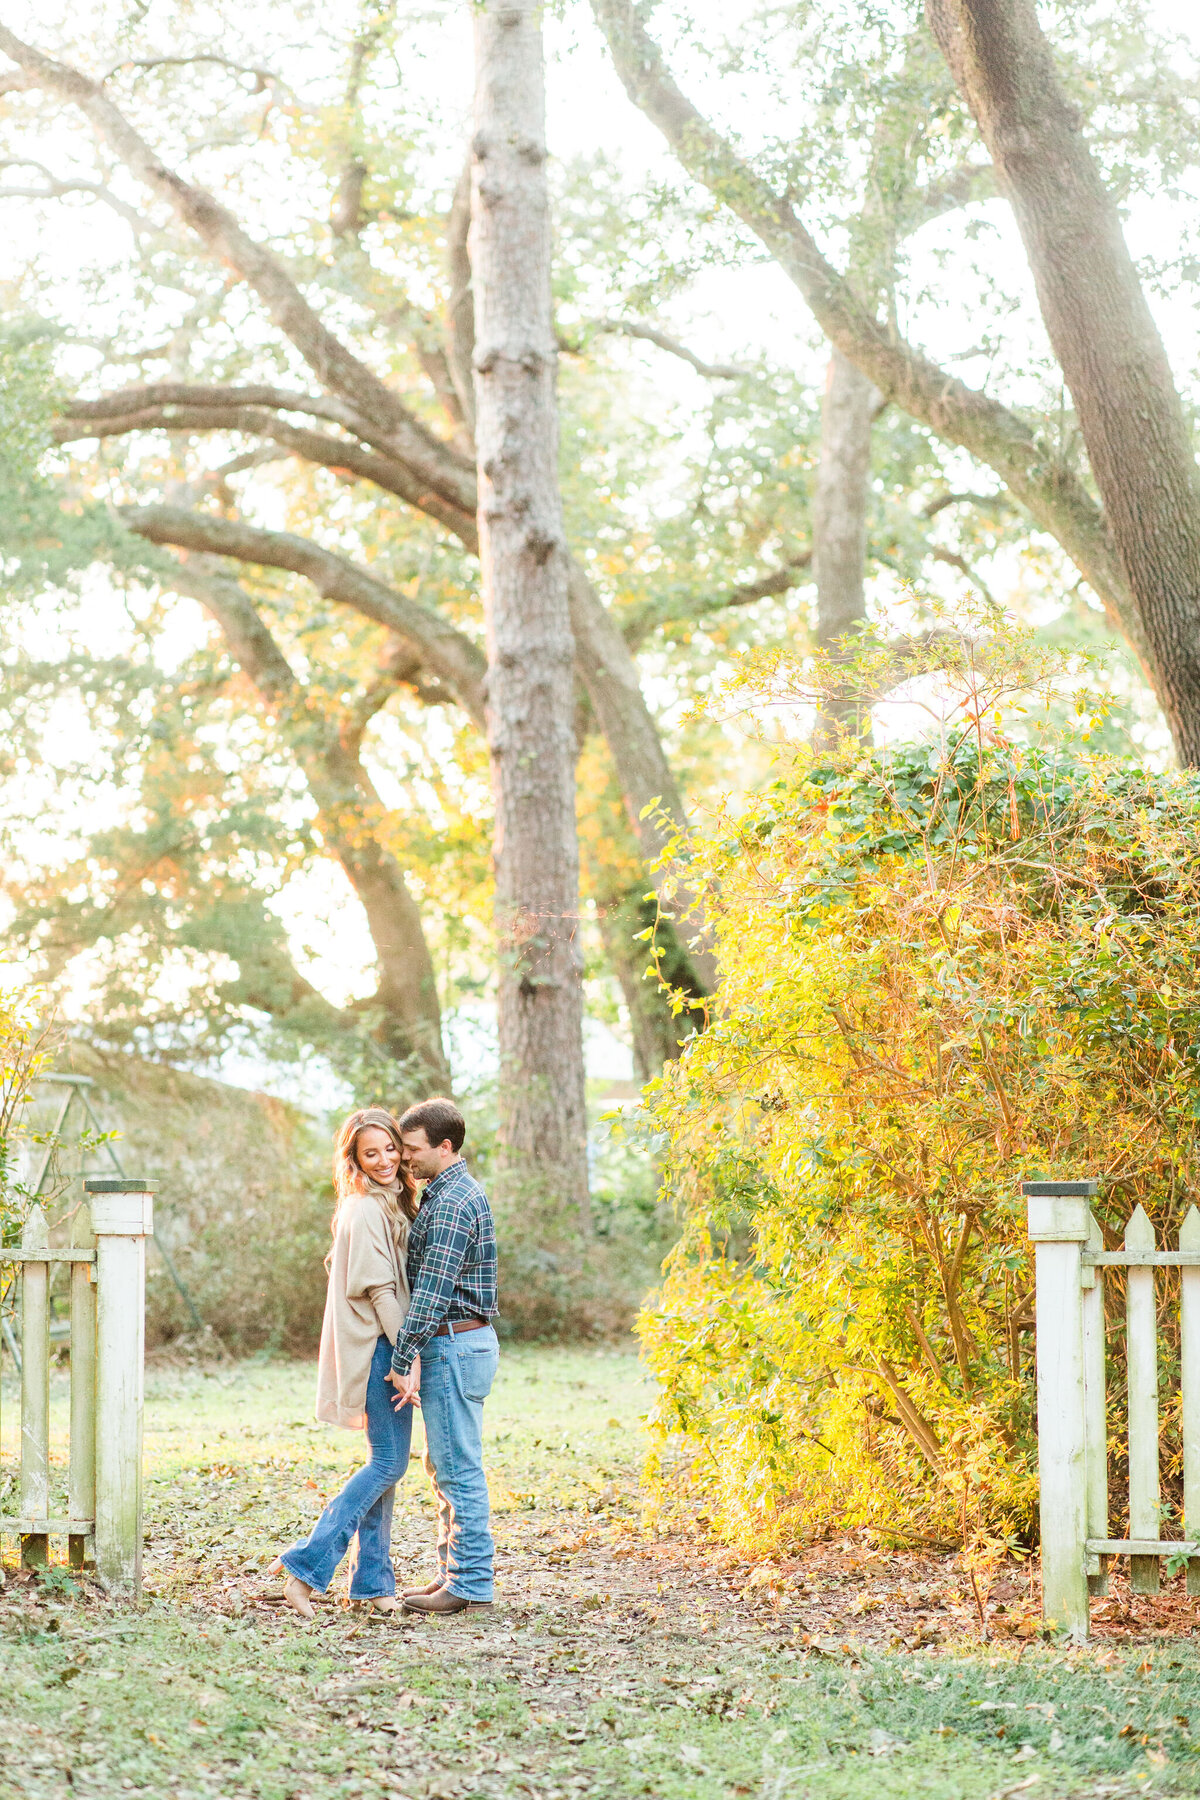 Renee Lorio Photography South Louisiana Wedding Engagement Light Airy Portrait Photographer Photos Southern Clean Colorful30